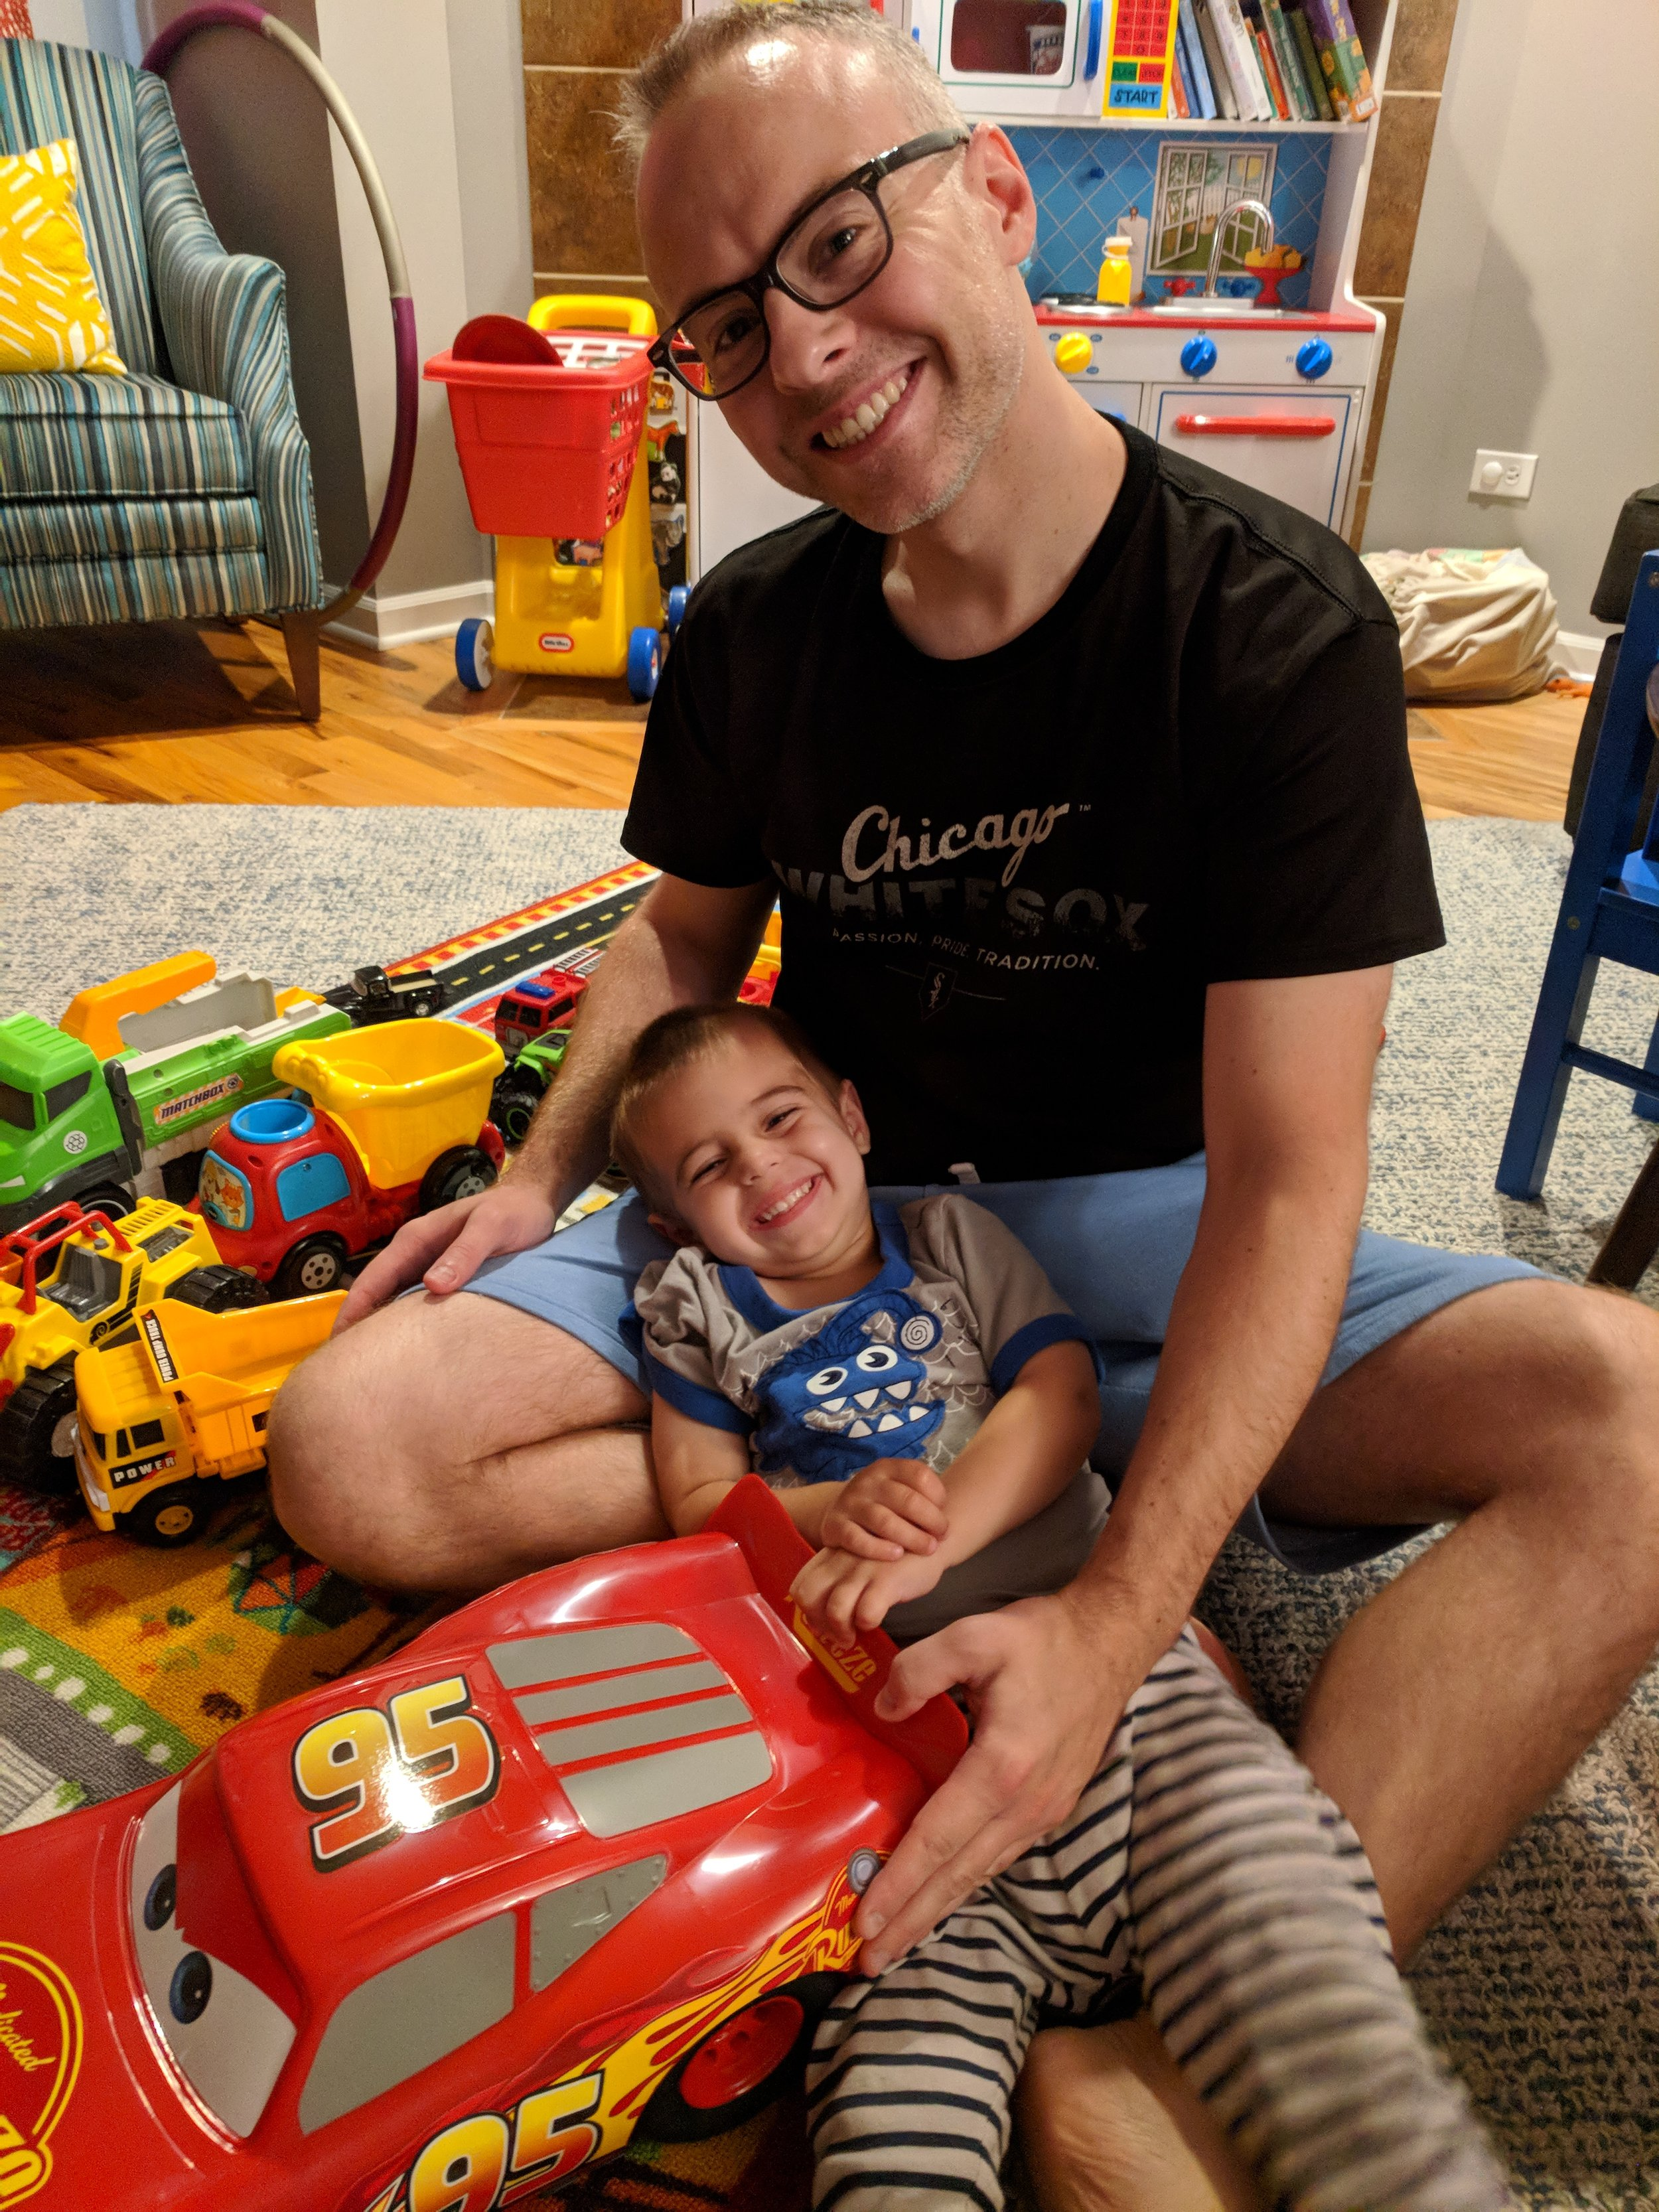 Hanging out with cars and Dad on a Saturday morning